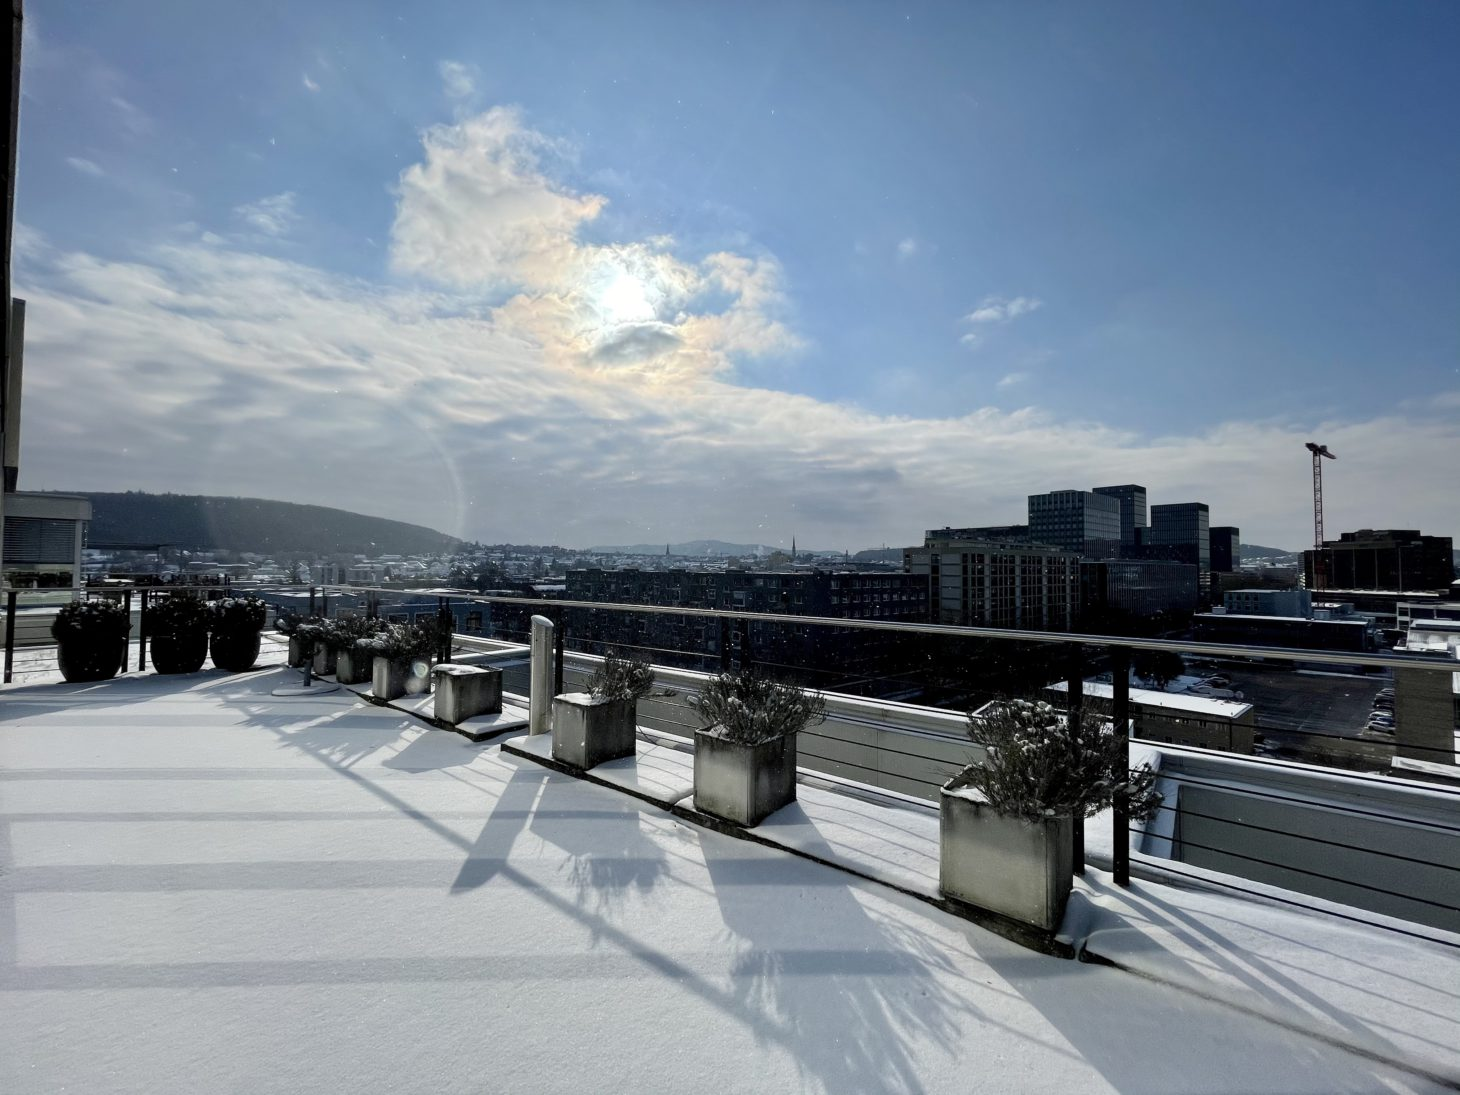 Image of the roof terrace of the valantic branch in Zurich in winter